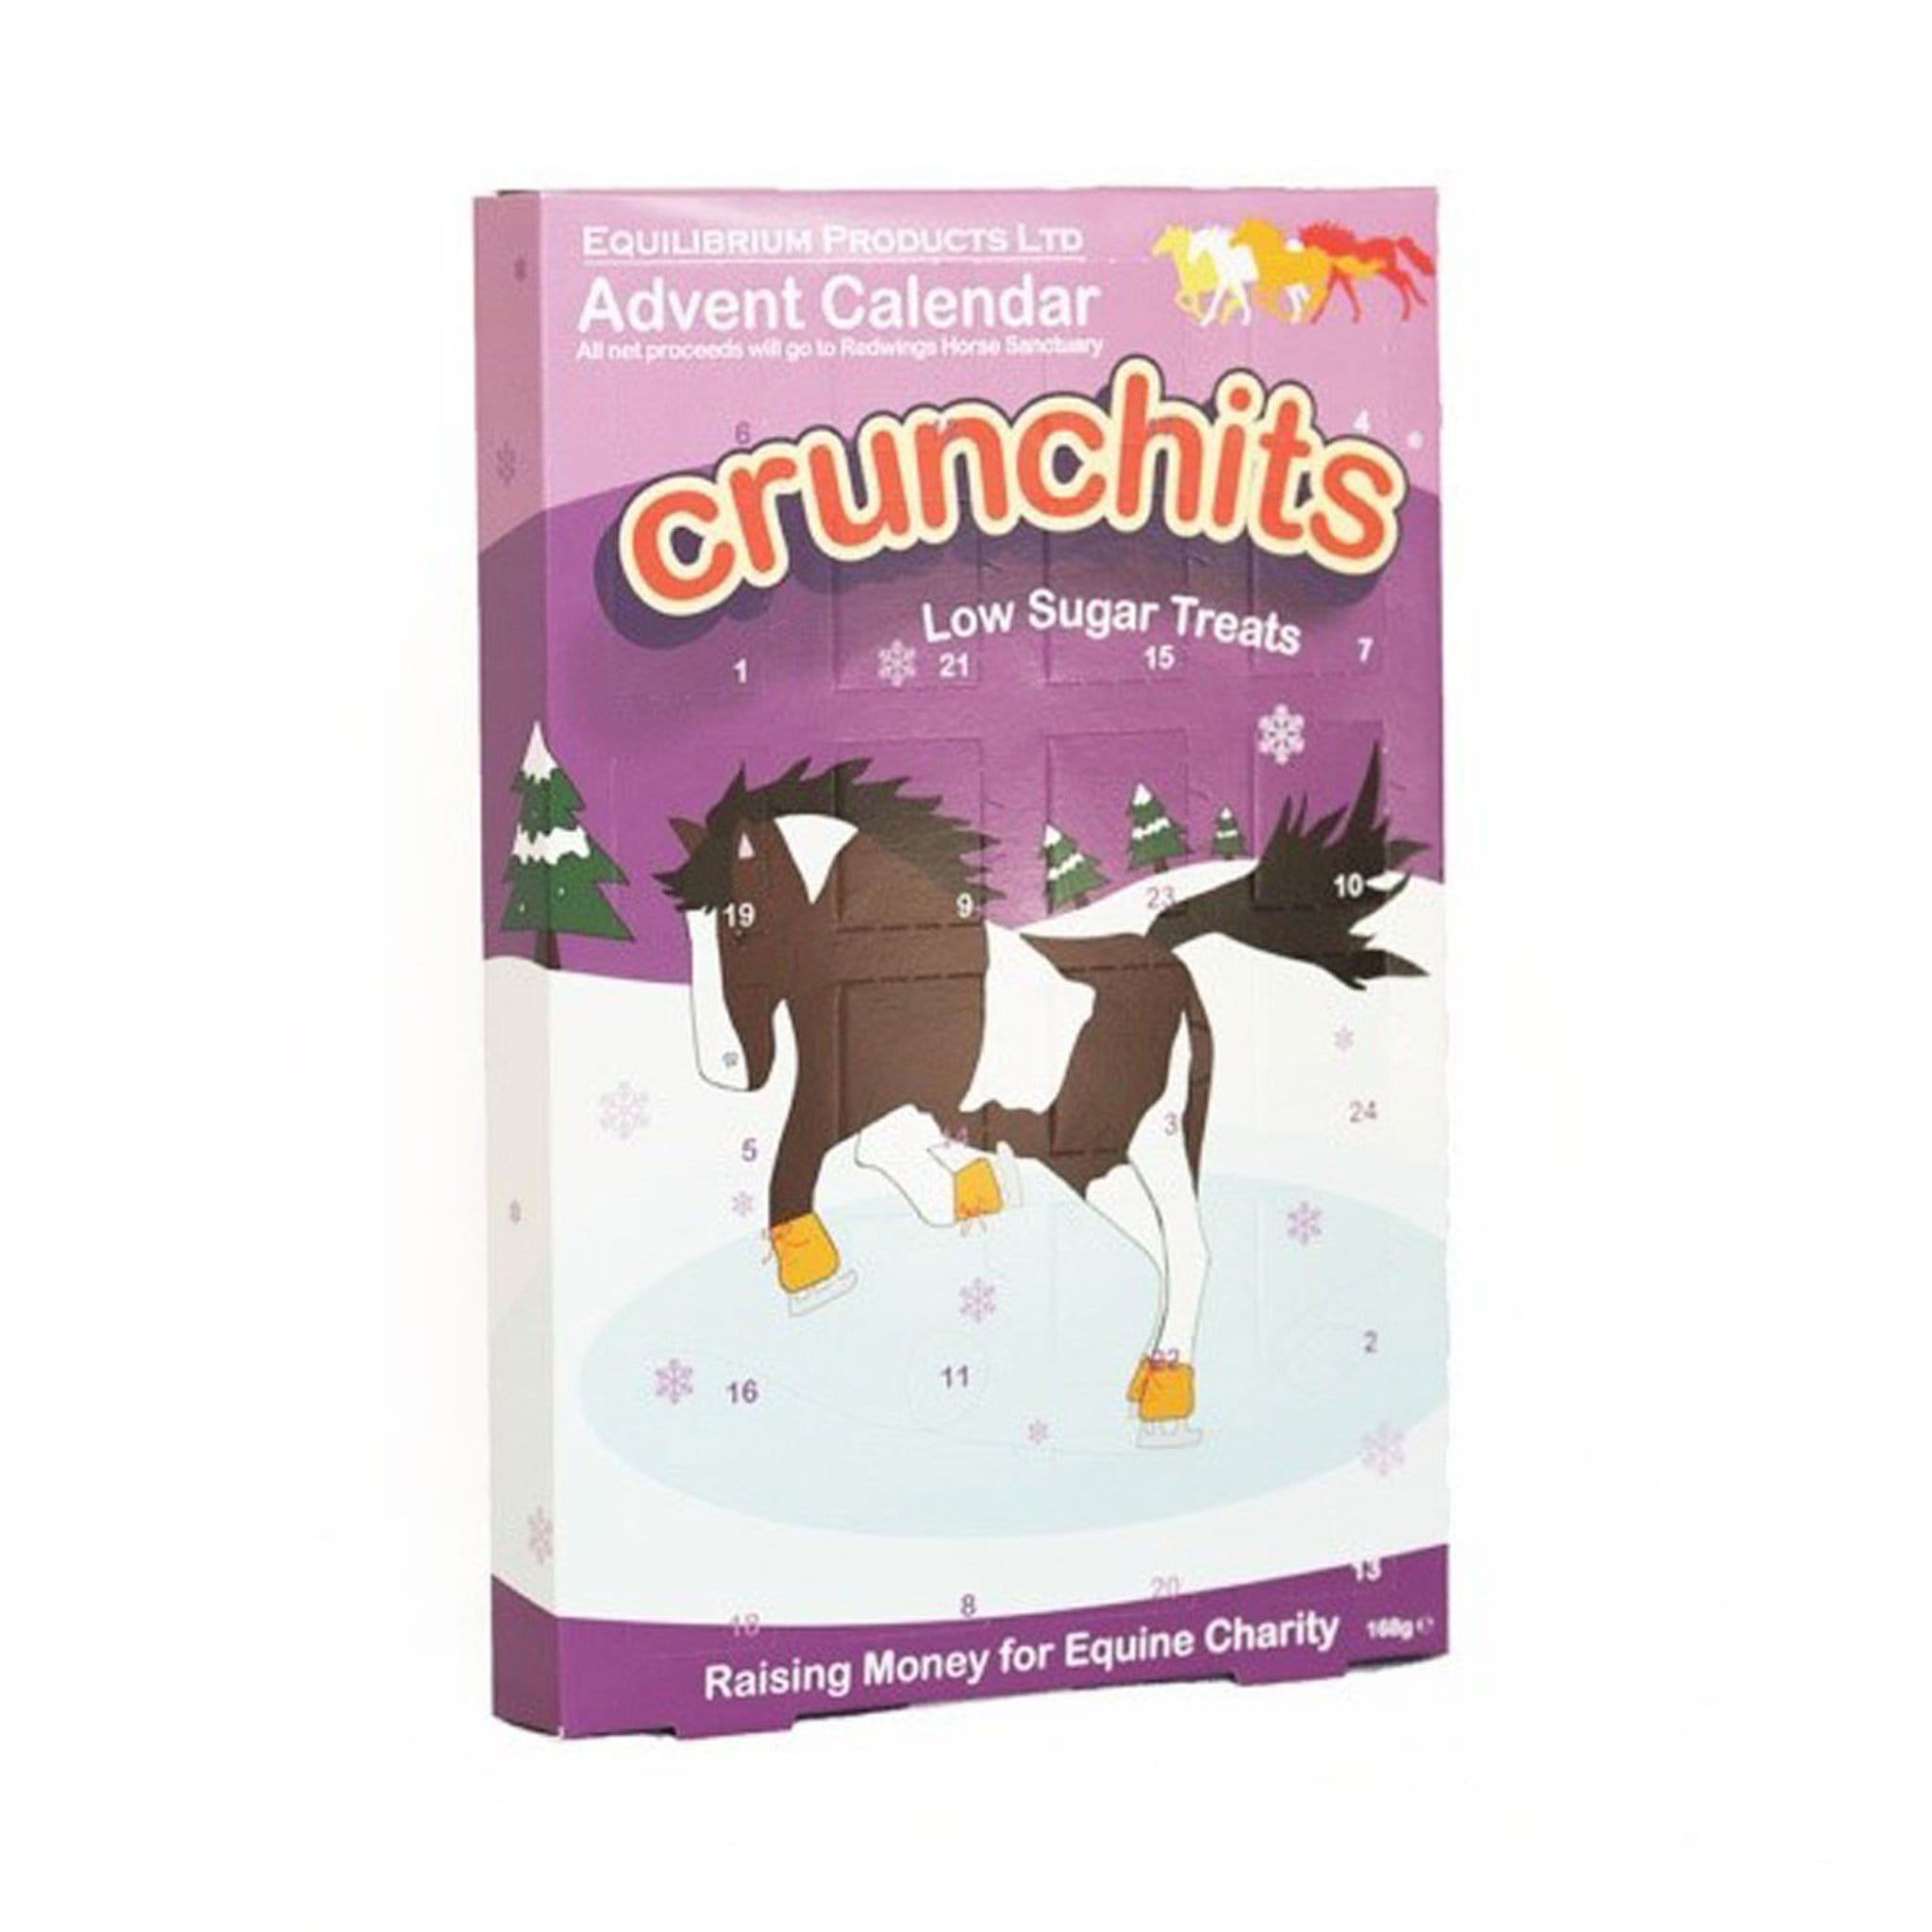 Equilibrium Crunchits Advent Calendar 20922